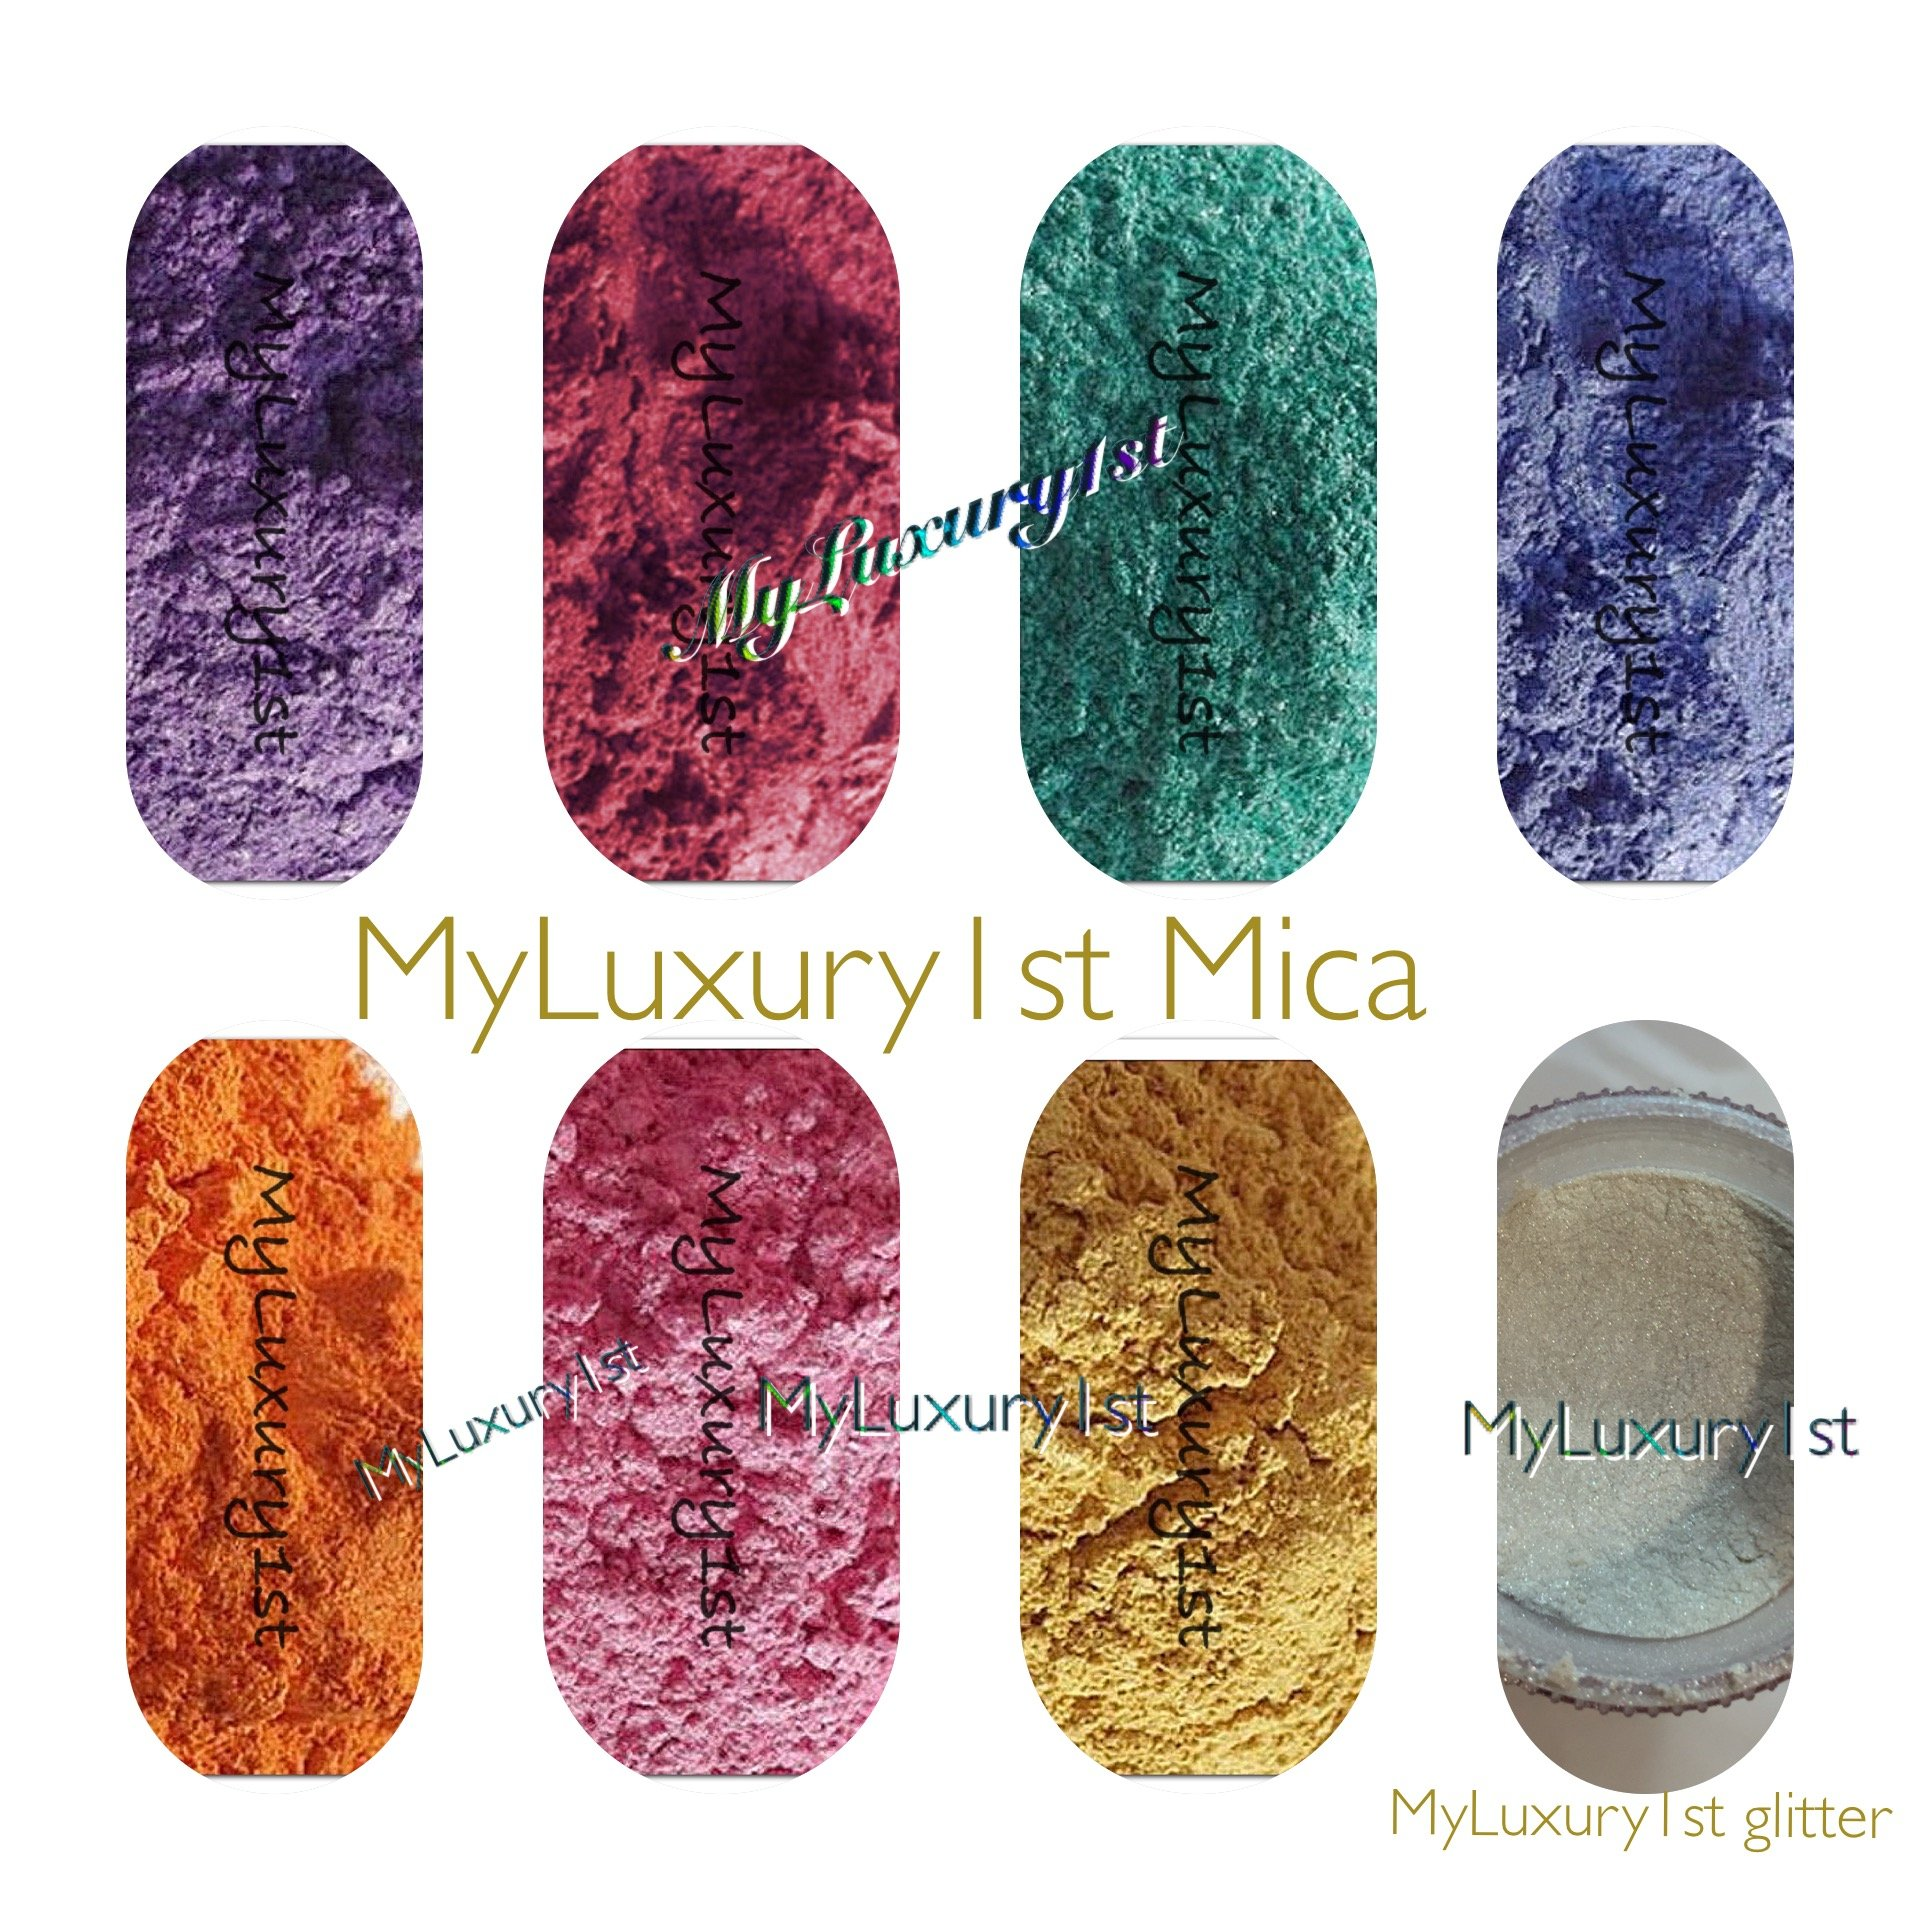 160 Grams Mica Colorants Lot of 8 Cosmetic 20g Soap and Craft Color Pigment Powders Teal Yellow Pink Orange Purple Hot Magenta Pink Fuchia White Blue in Baggies Set by MyLuxury1st (Image #1)